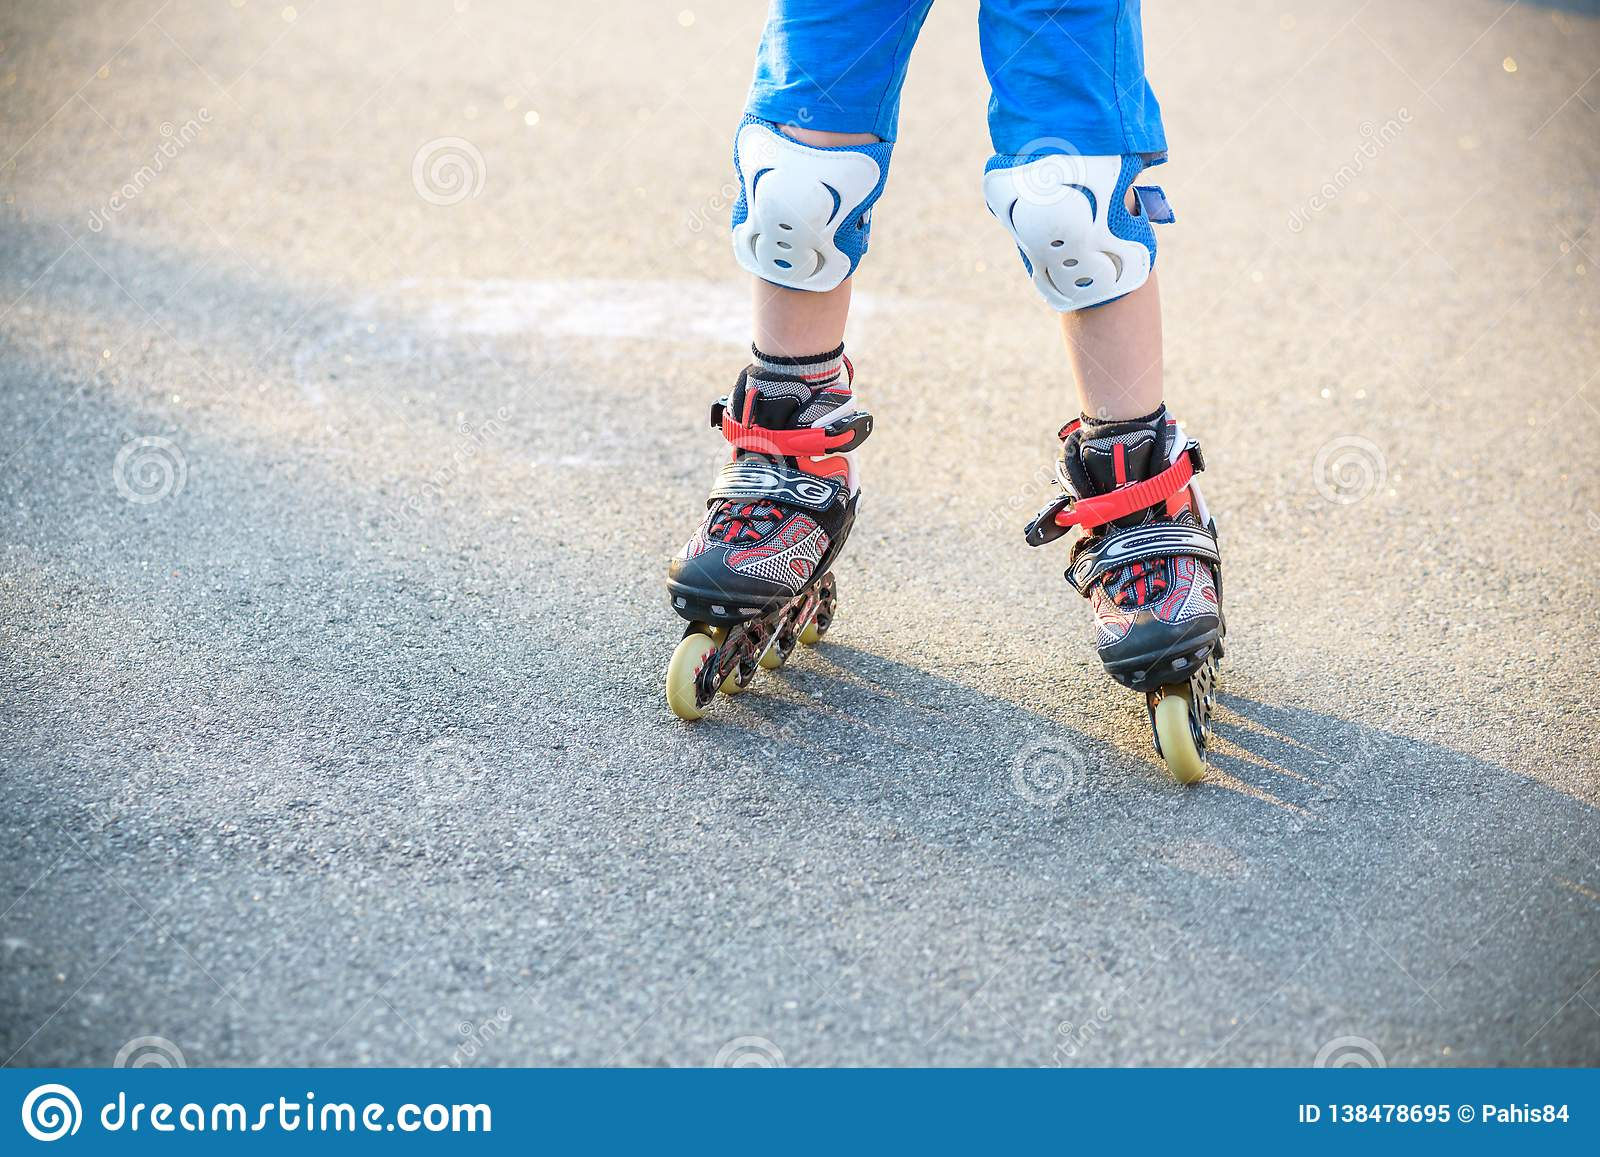 Little boy learning to roller skate in summer park. Children wearing protection pads for safe roller skating ride. Active outdoor